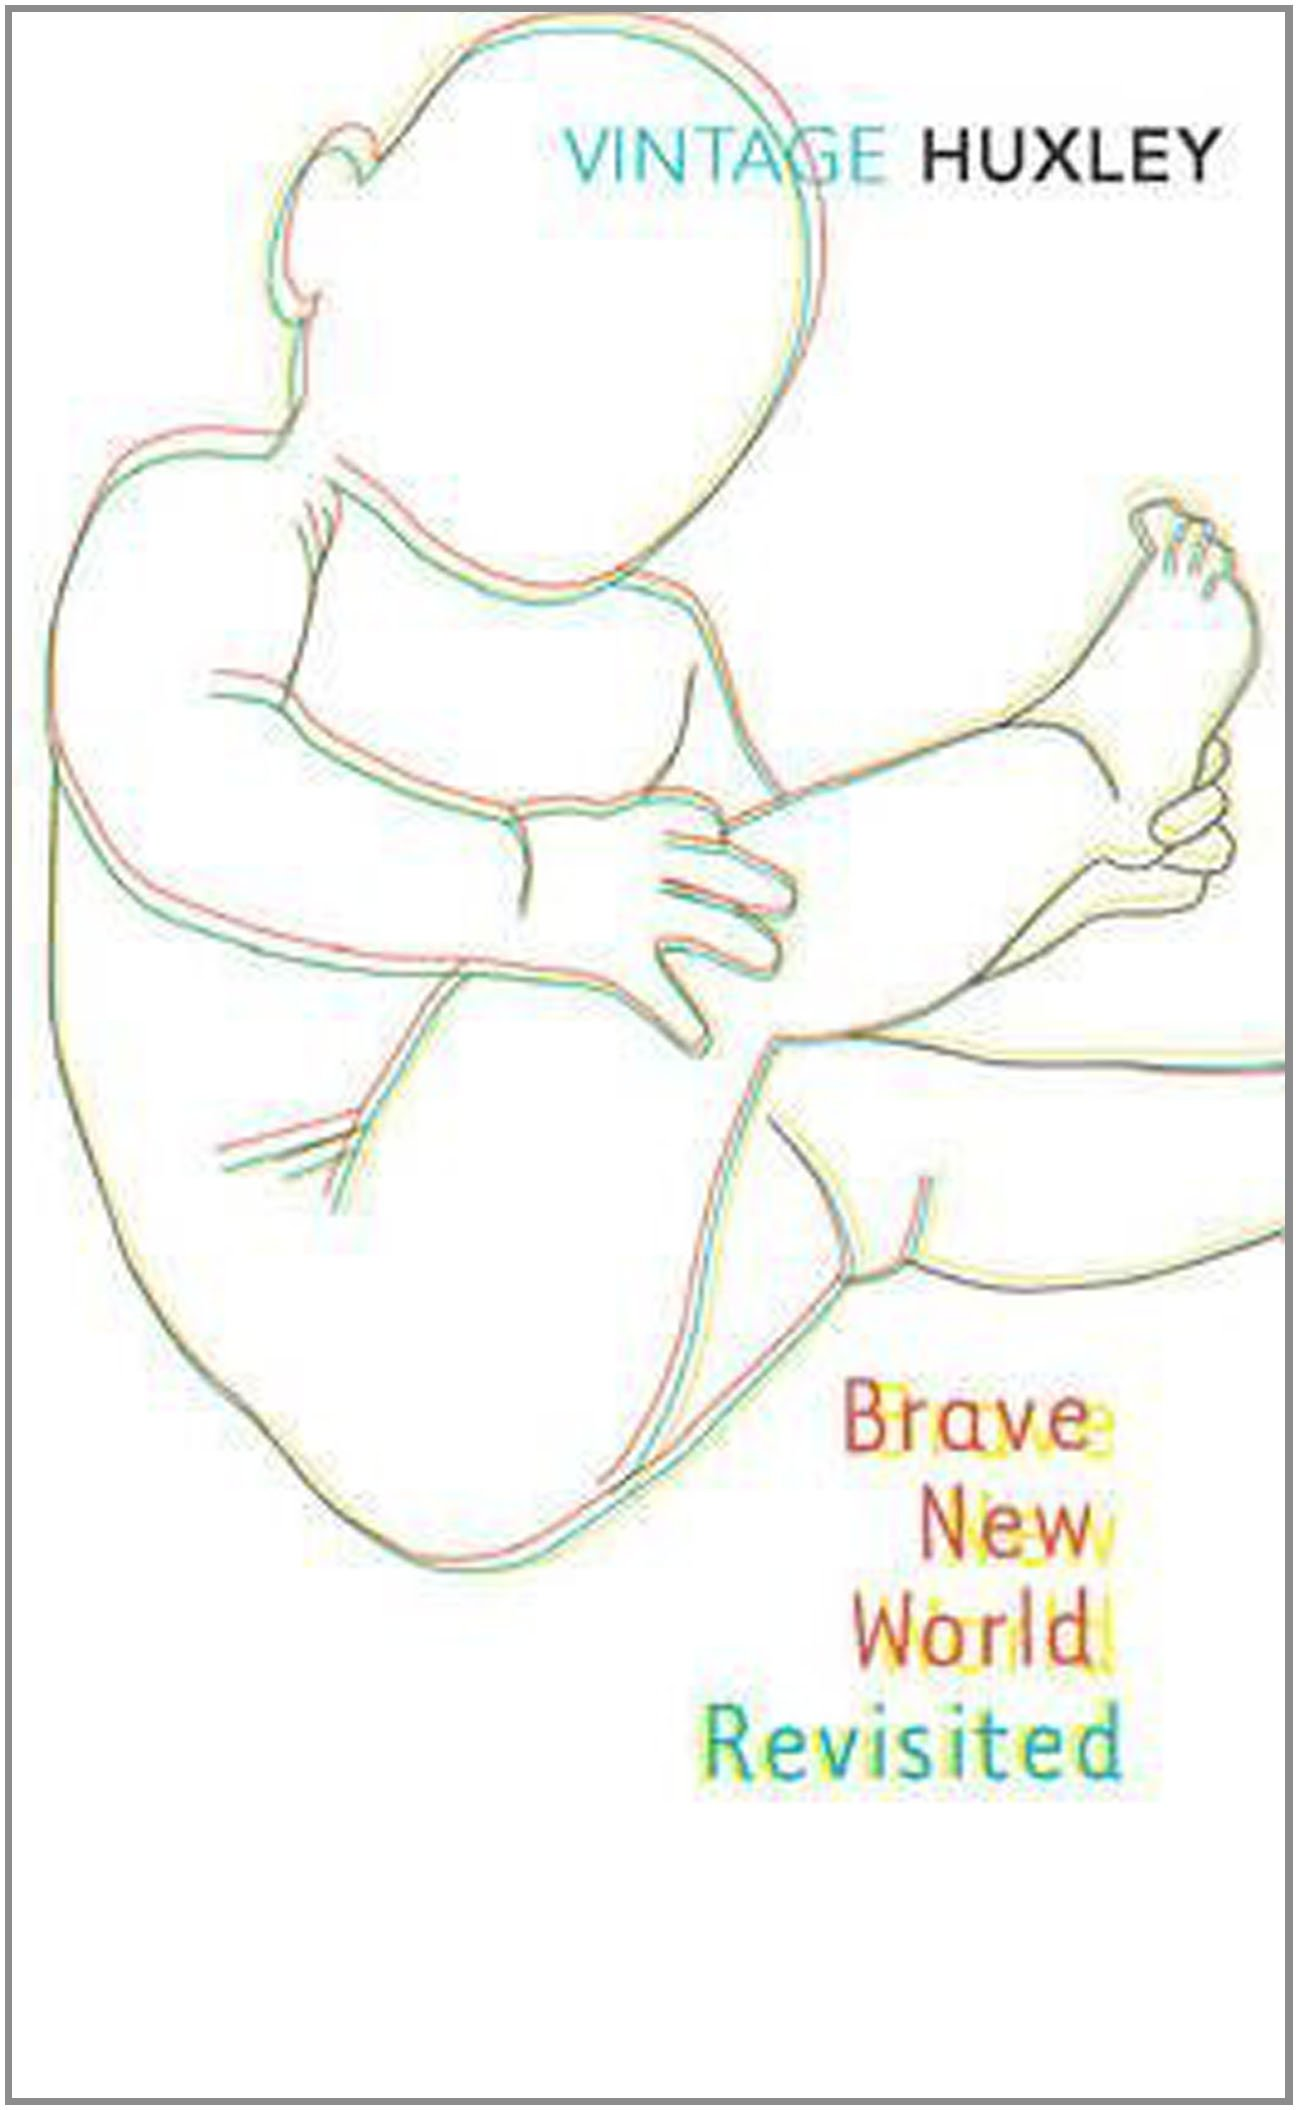 brave new world re ed amazon co uk aldous huxley david brave new world re ed amazon co uk aldous huxley david bradshaw 8601300072852 books